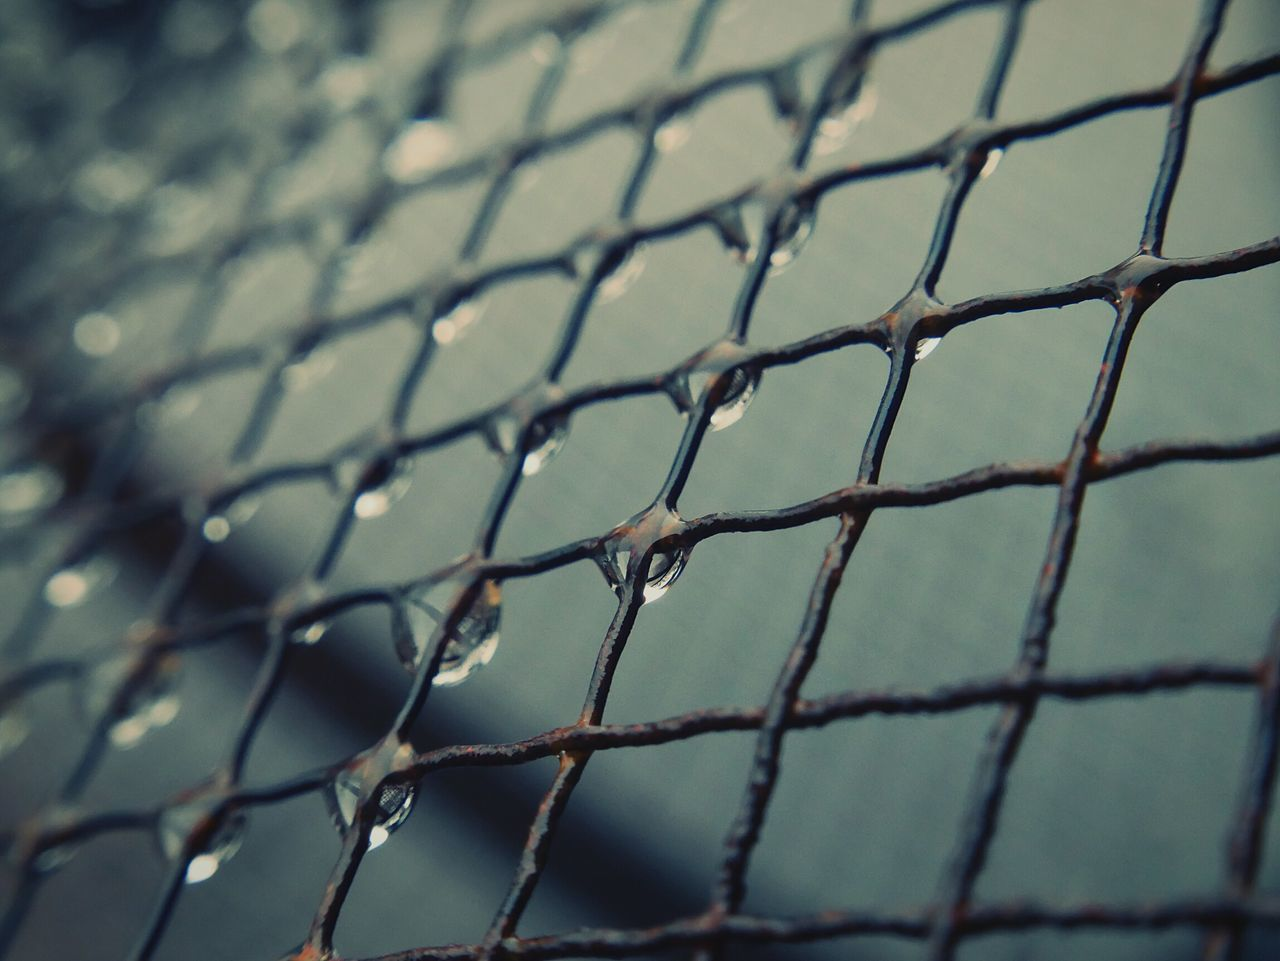 Pattern Close-up Separation Outdoors Backgrounds Dew Drop RainDrop Textures And Surfaces Abstract Lines Rain Grid Mesh Wire Aged Metal